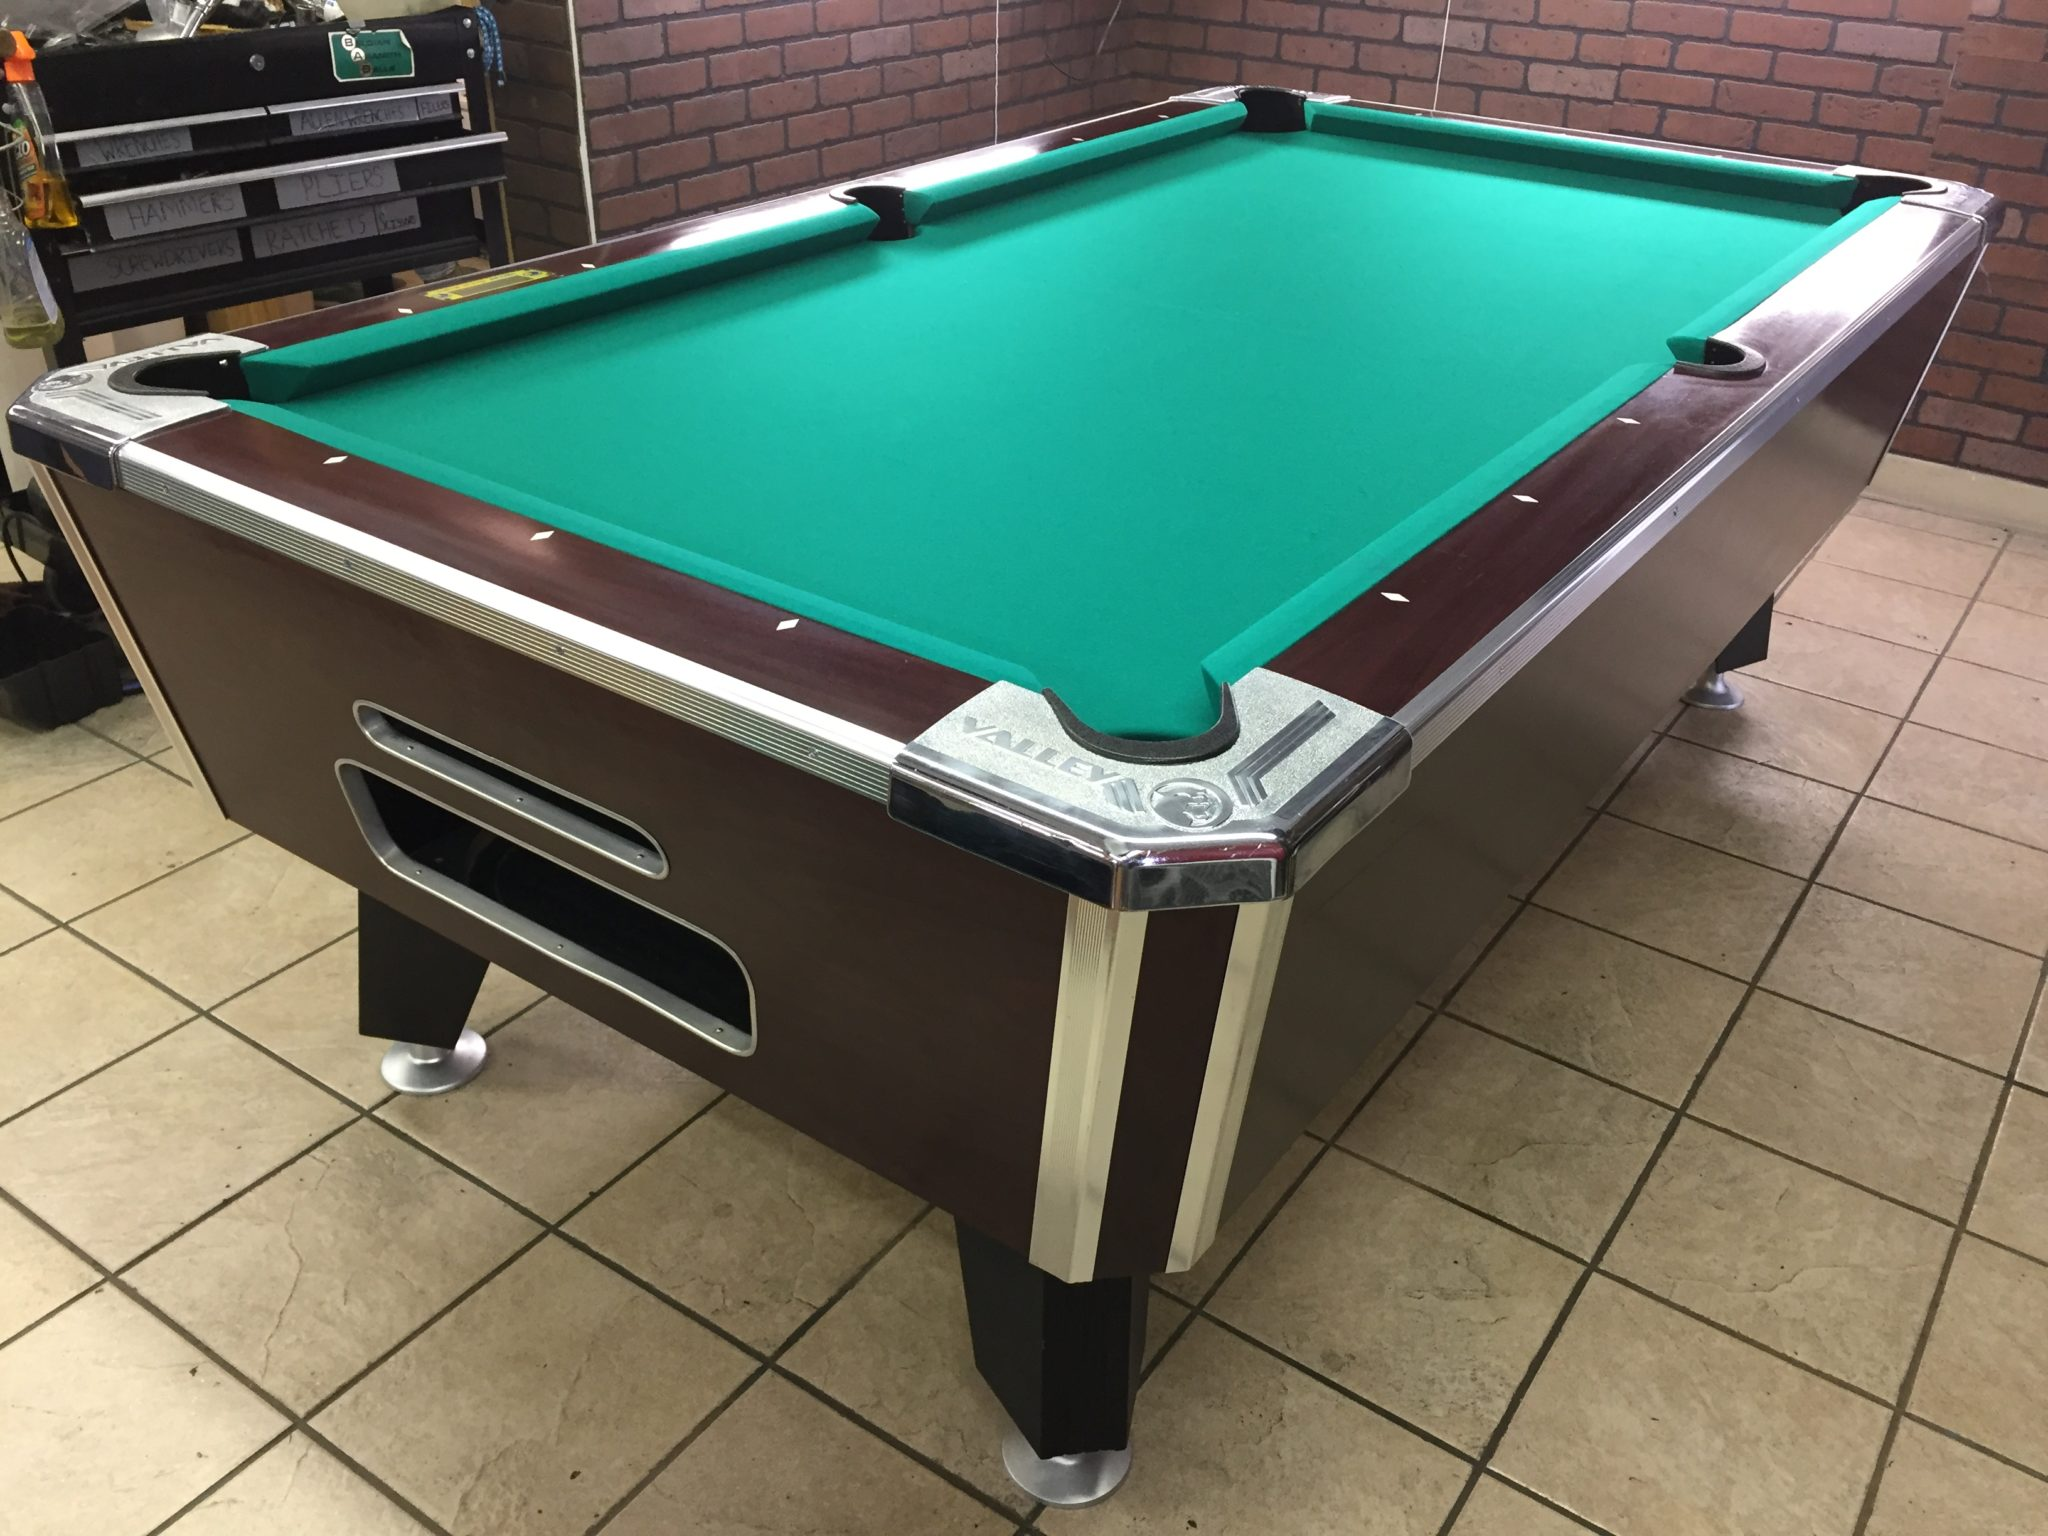 Table 041117 valley used coin operated pool table used - Pool table images ...